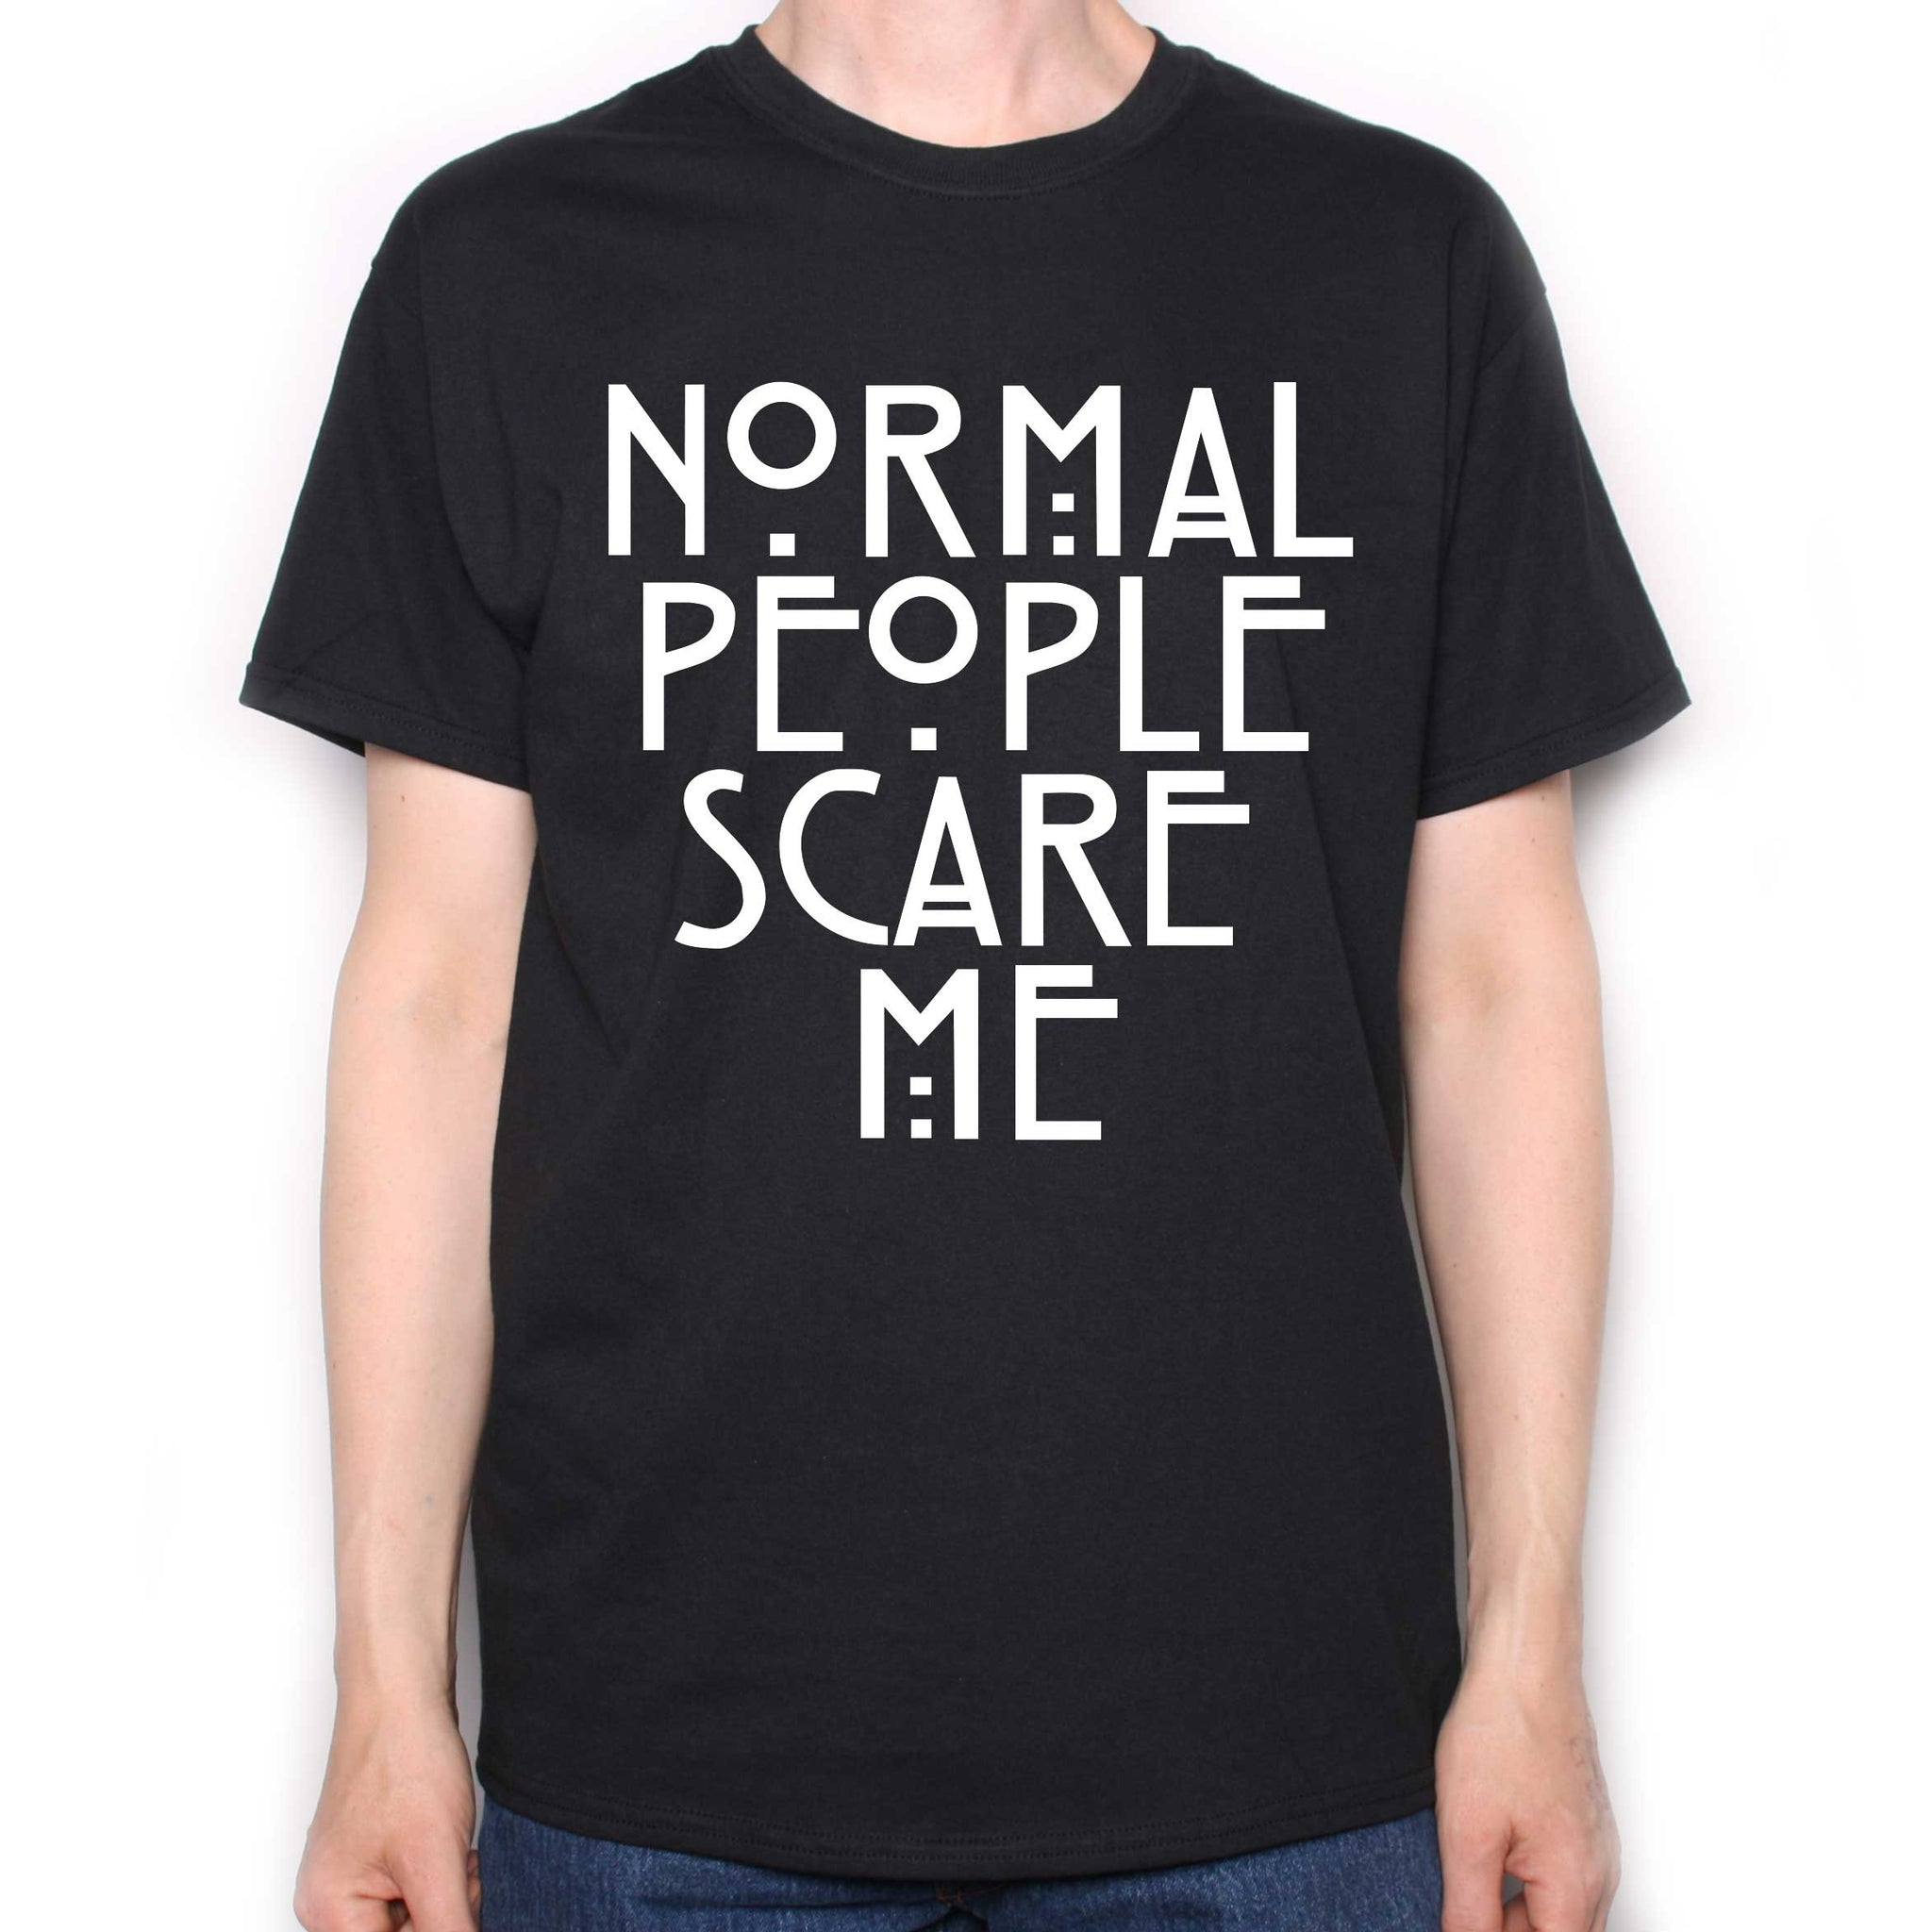 8e1a5a4f Normal People Scare Me T Shirt   American Horror Story Inspired T ...